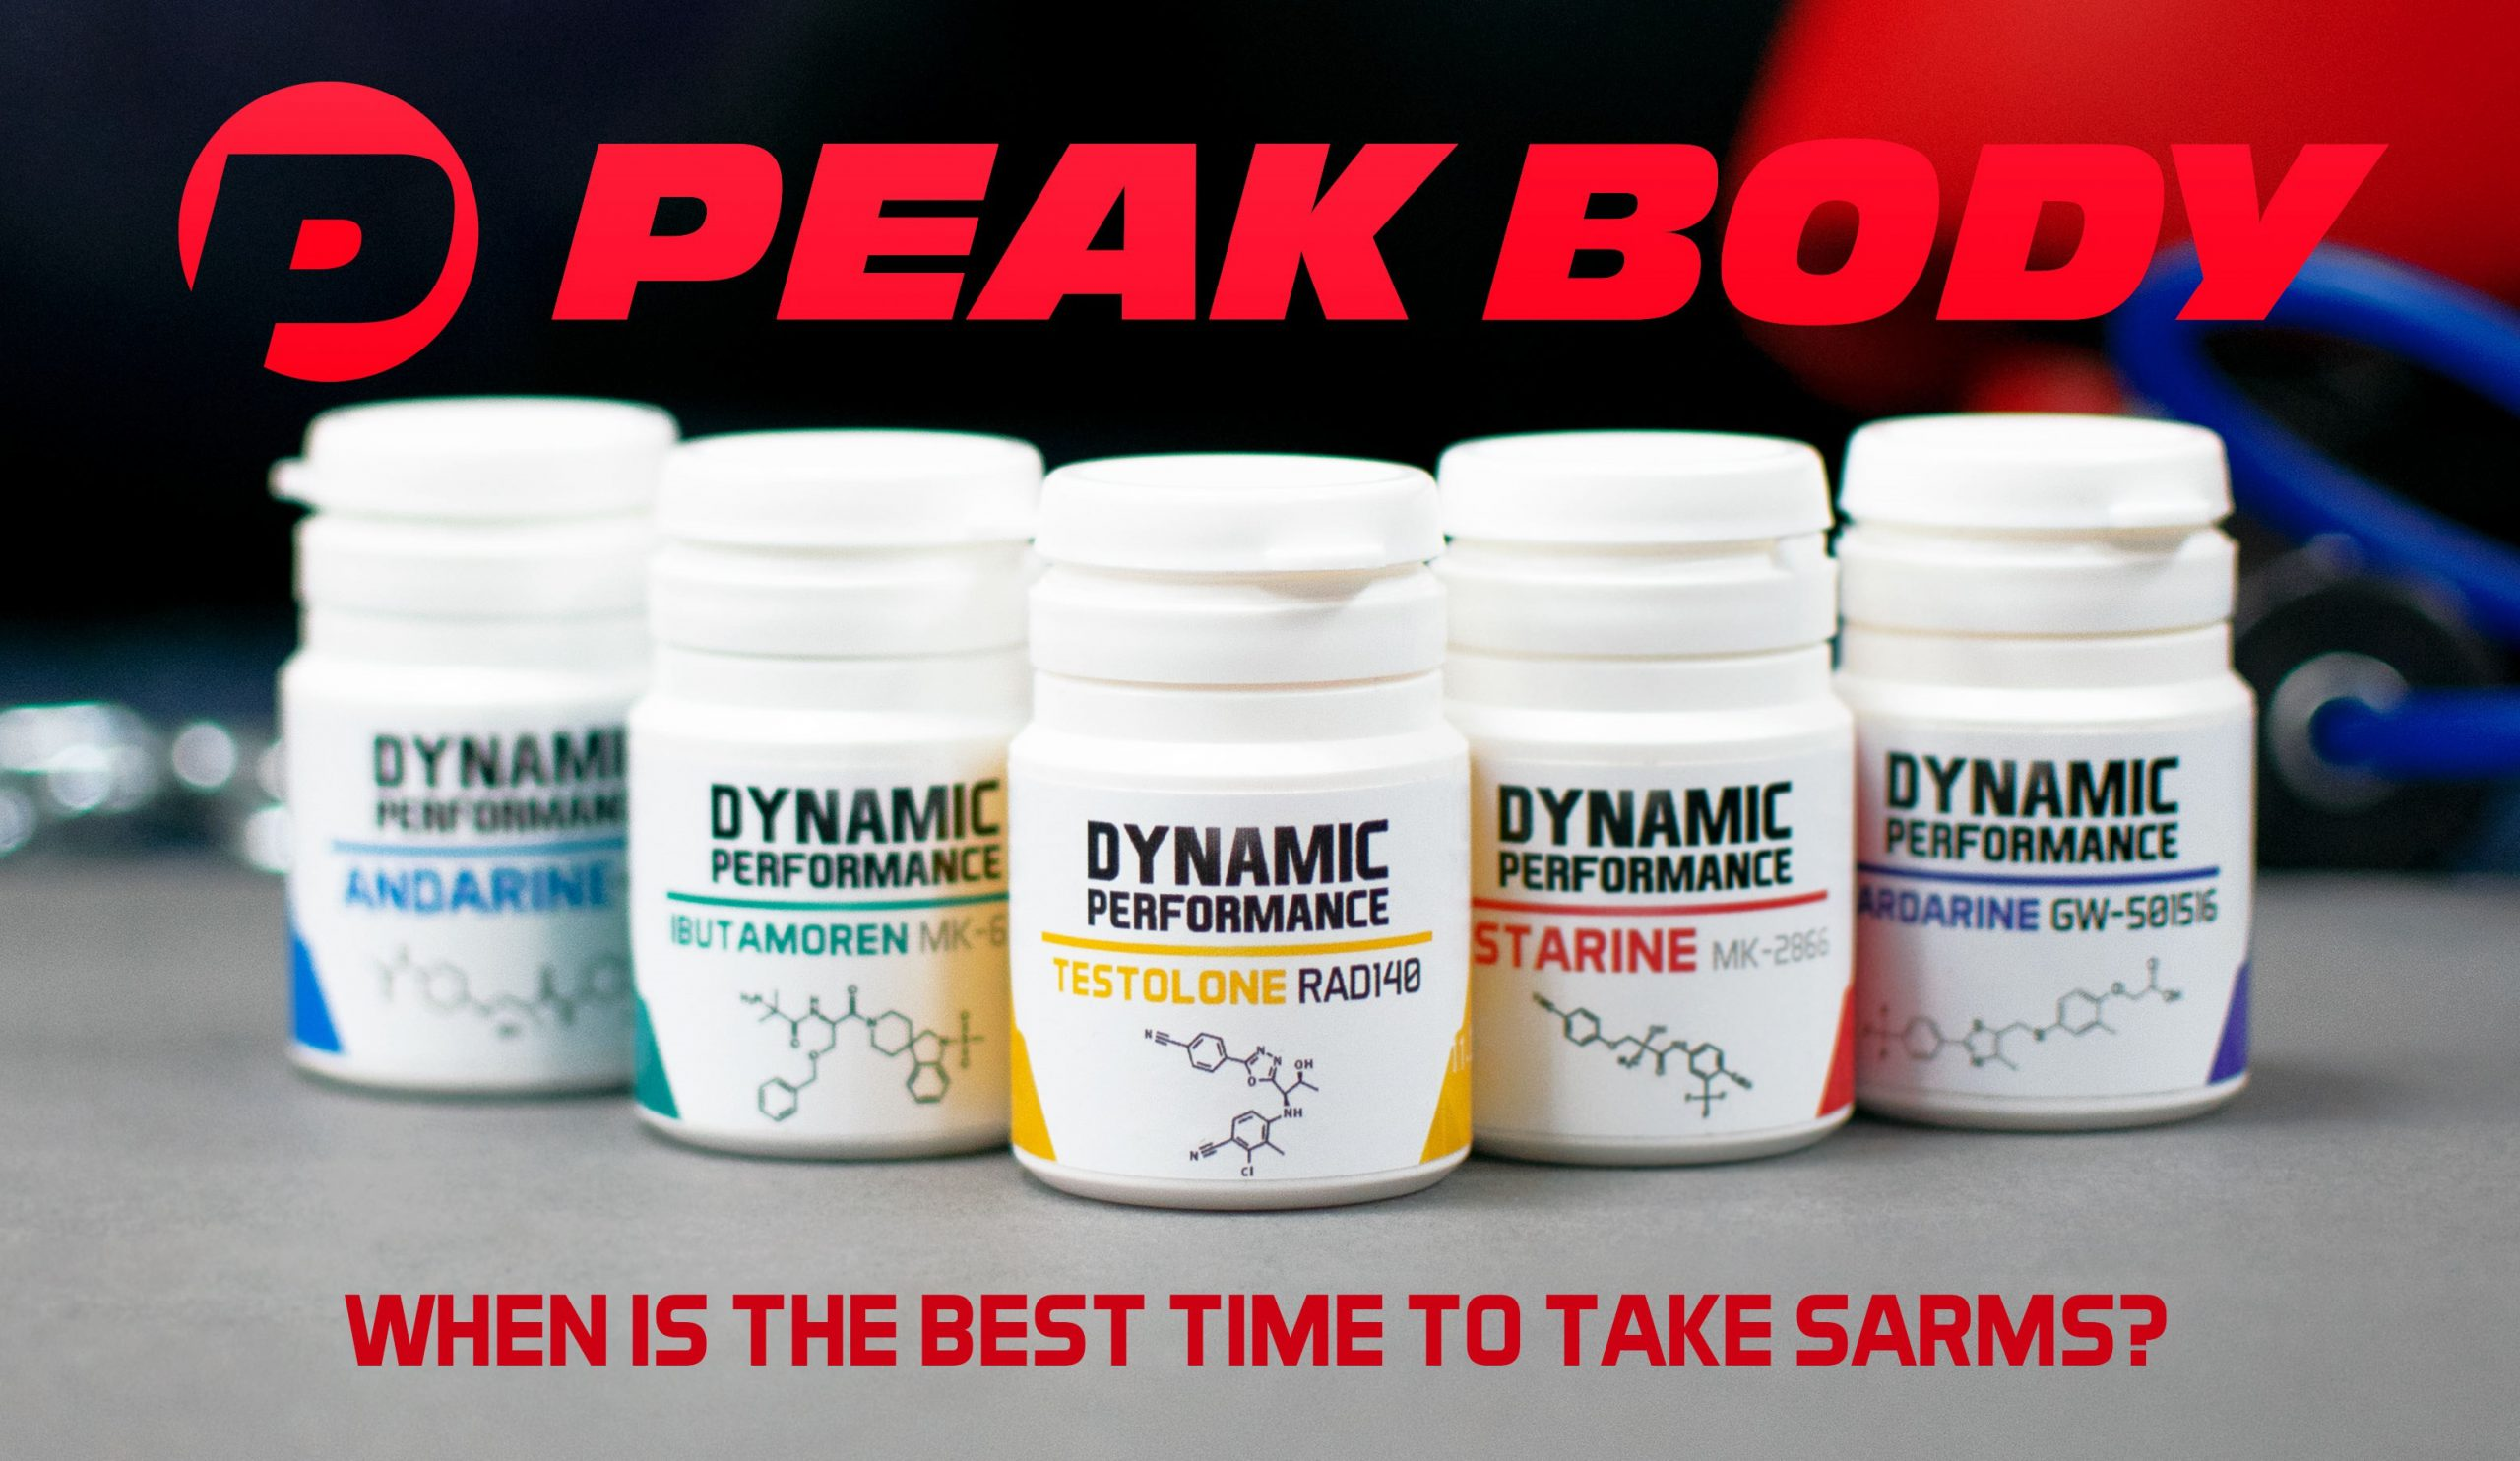 When is the best time to take SARMs?